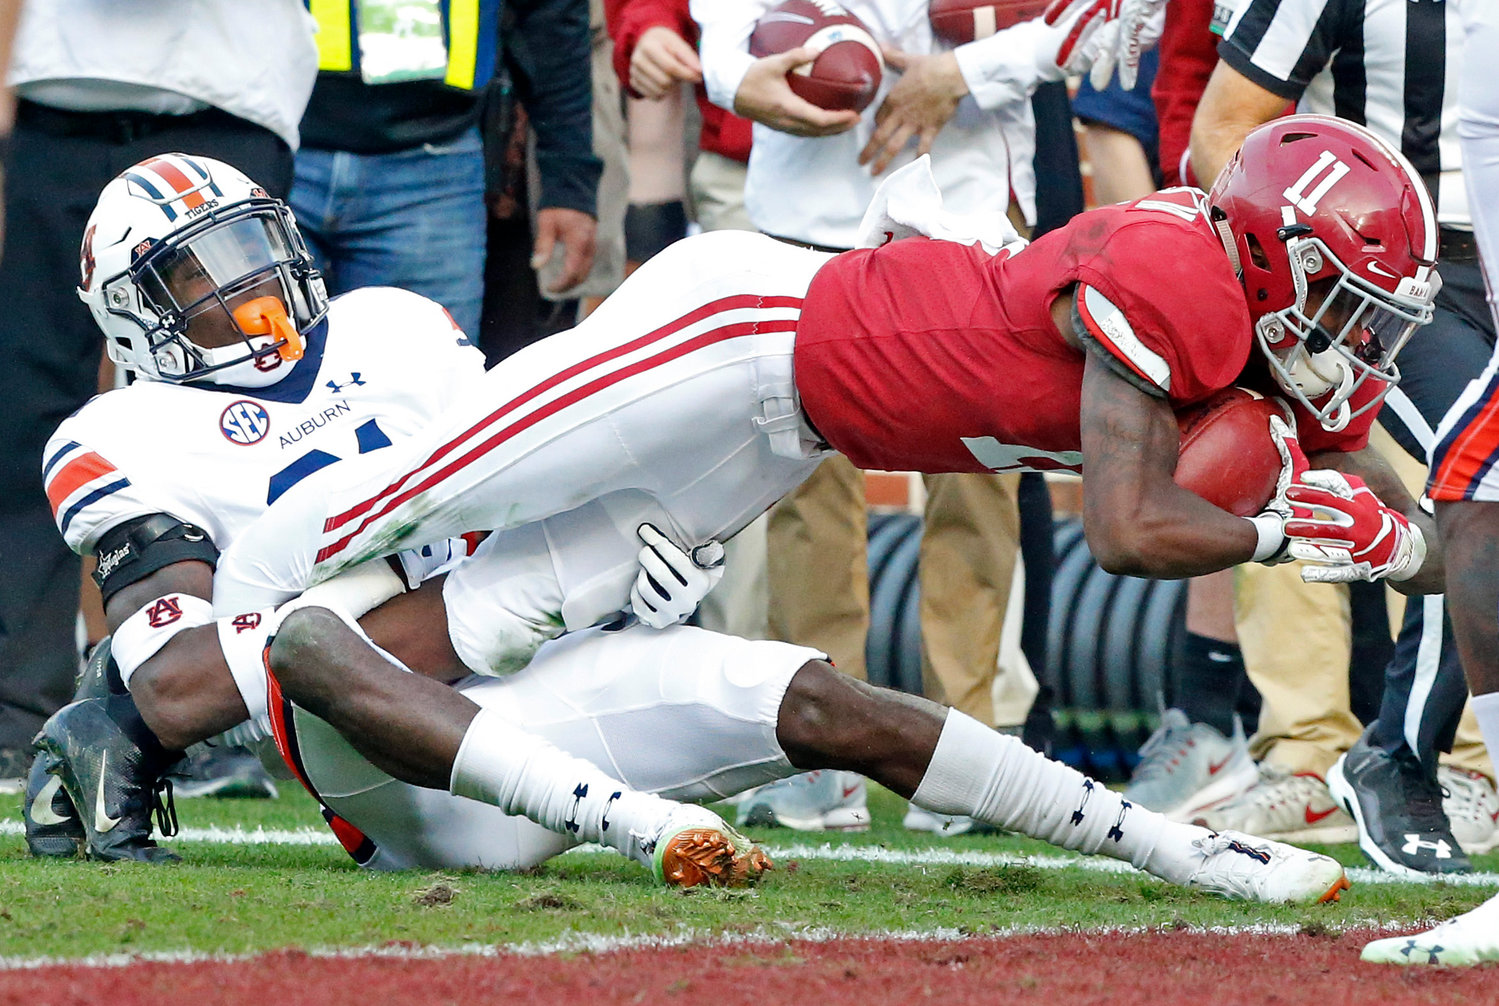 Alabama's Henry Ruggs III stretches for a touchdown during the Tide's 52-21 win over Auburn in Saturday's Iron Bowl at Bryant-Denny Stadium. Alabama improved to 12-0 on the season heading into next week's SEC Championship Game.